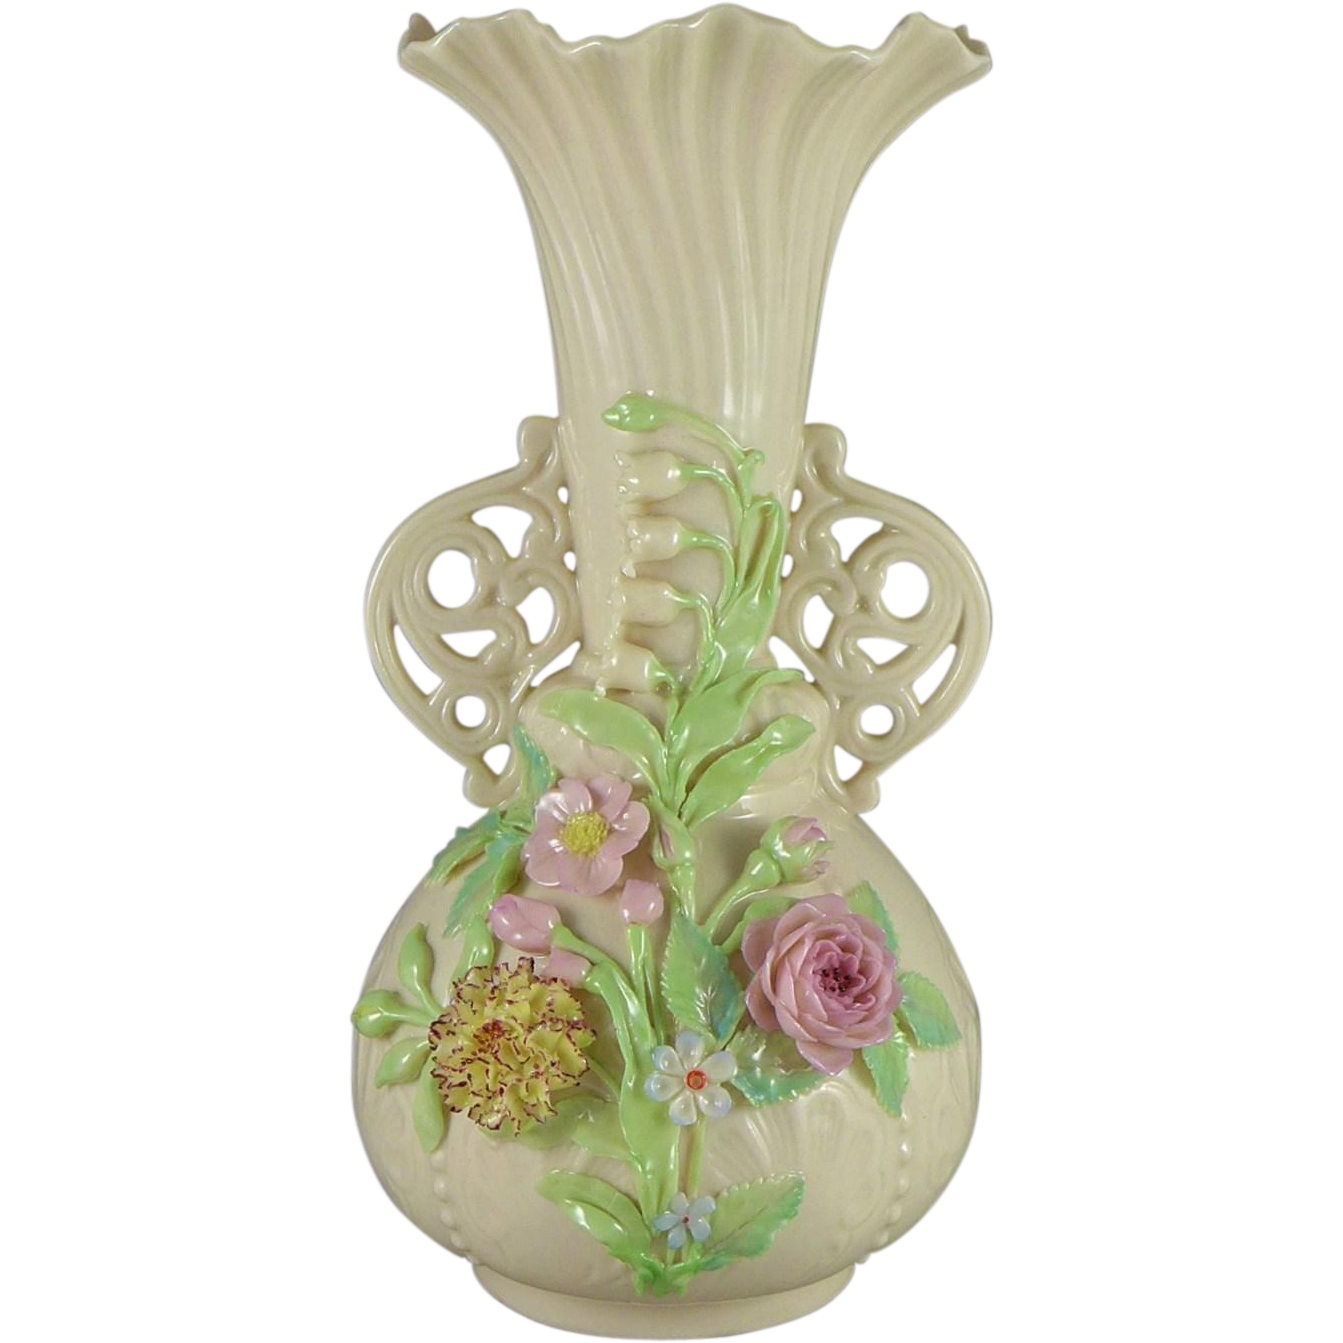 Vintage Belleek Princess Floral Vase 1946 - 1955 1st Green Mark